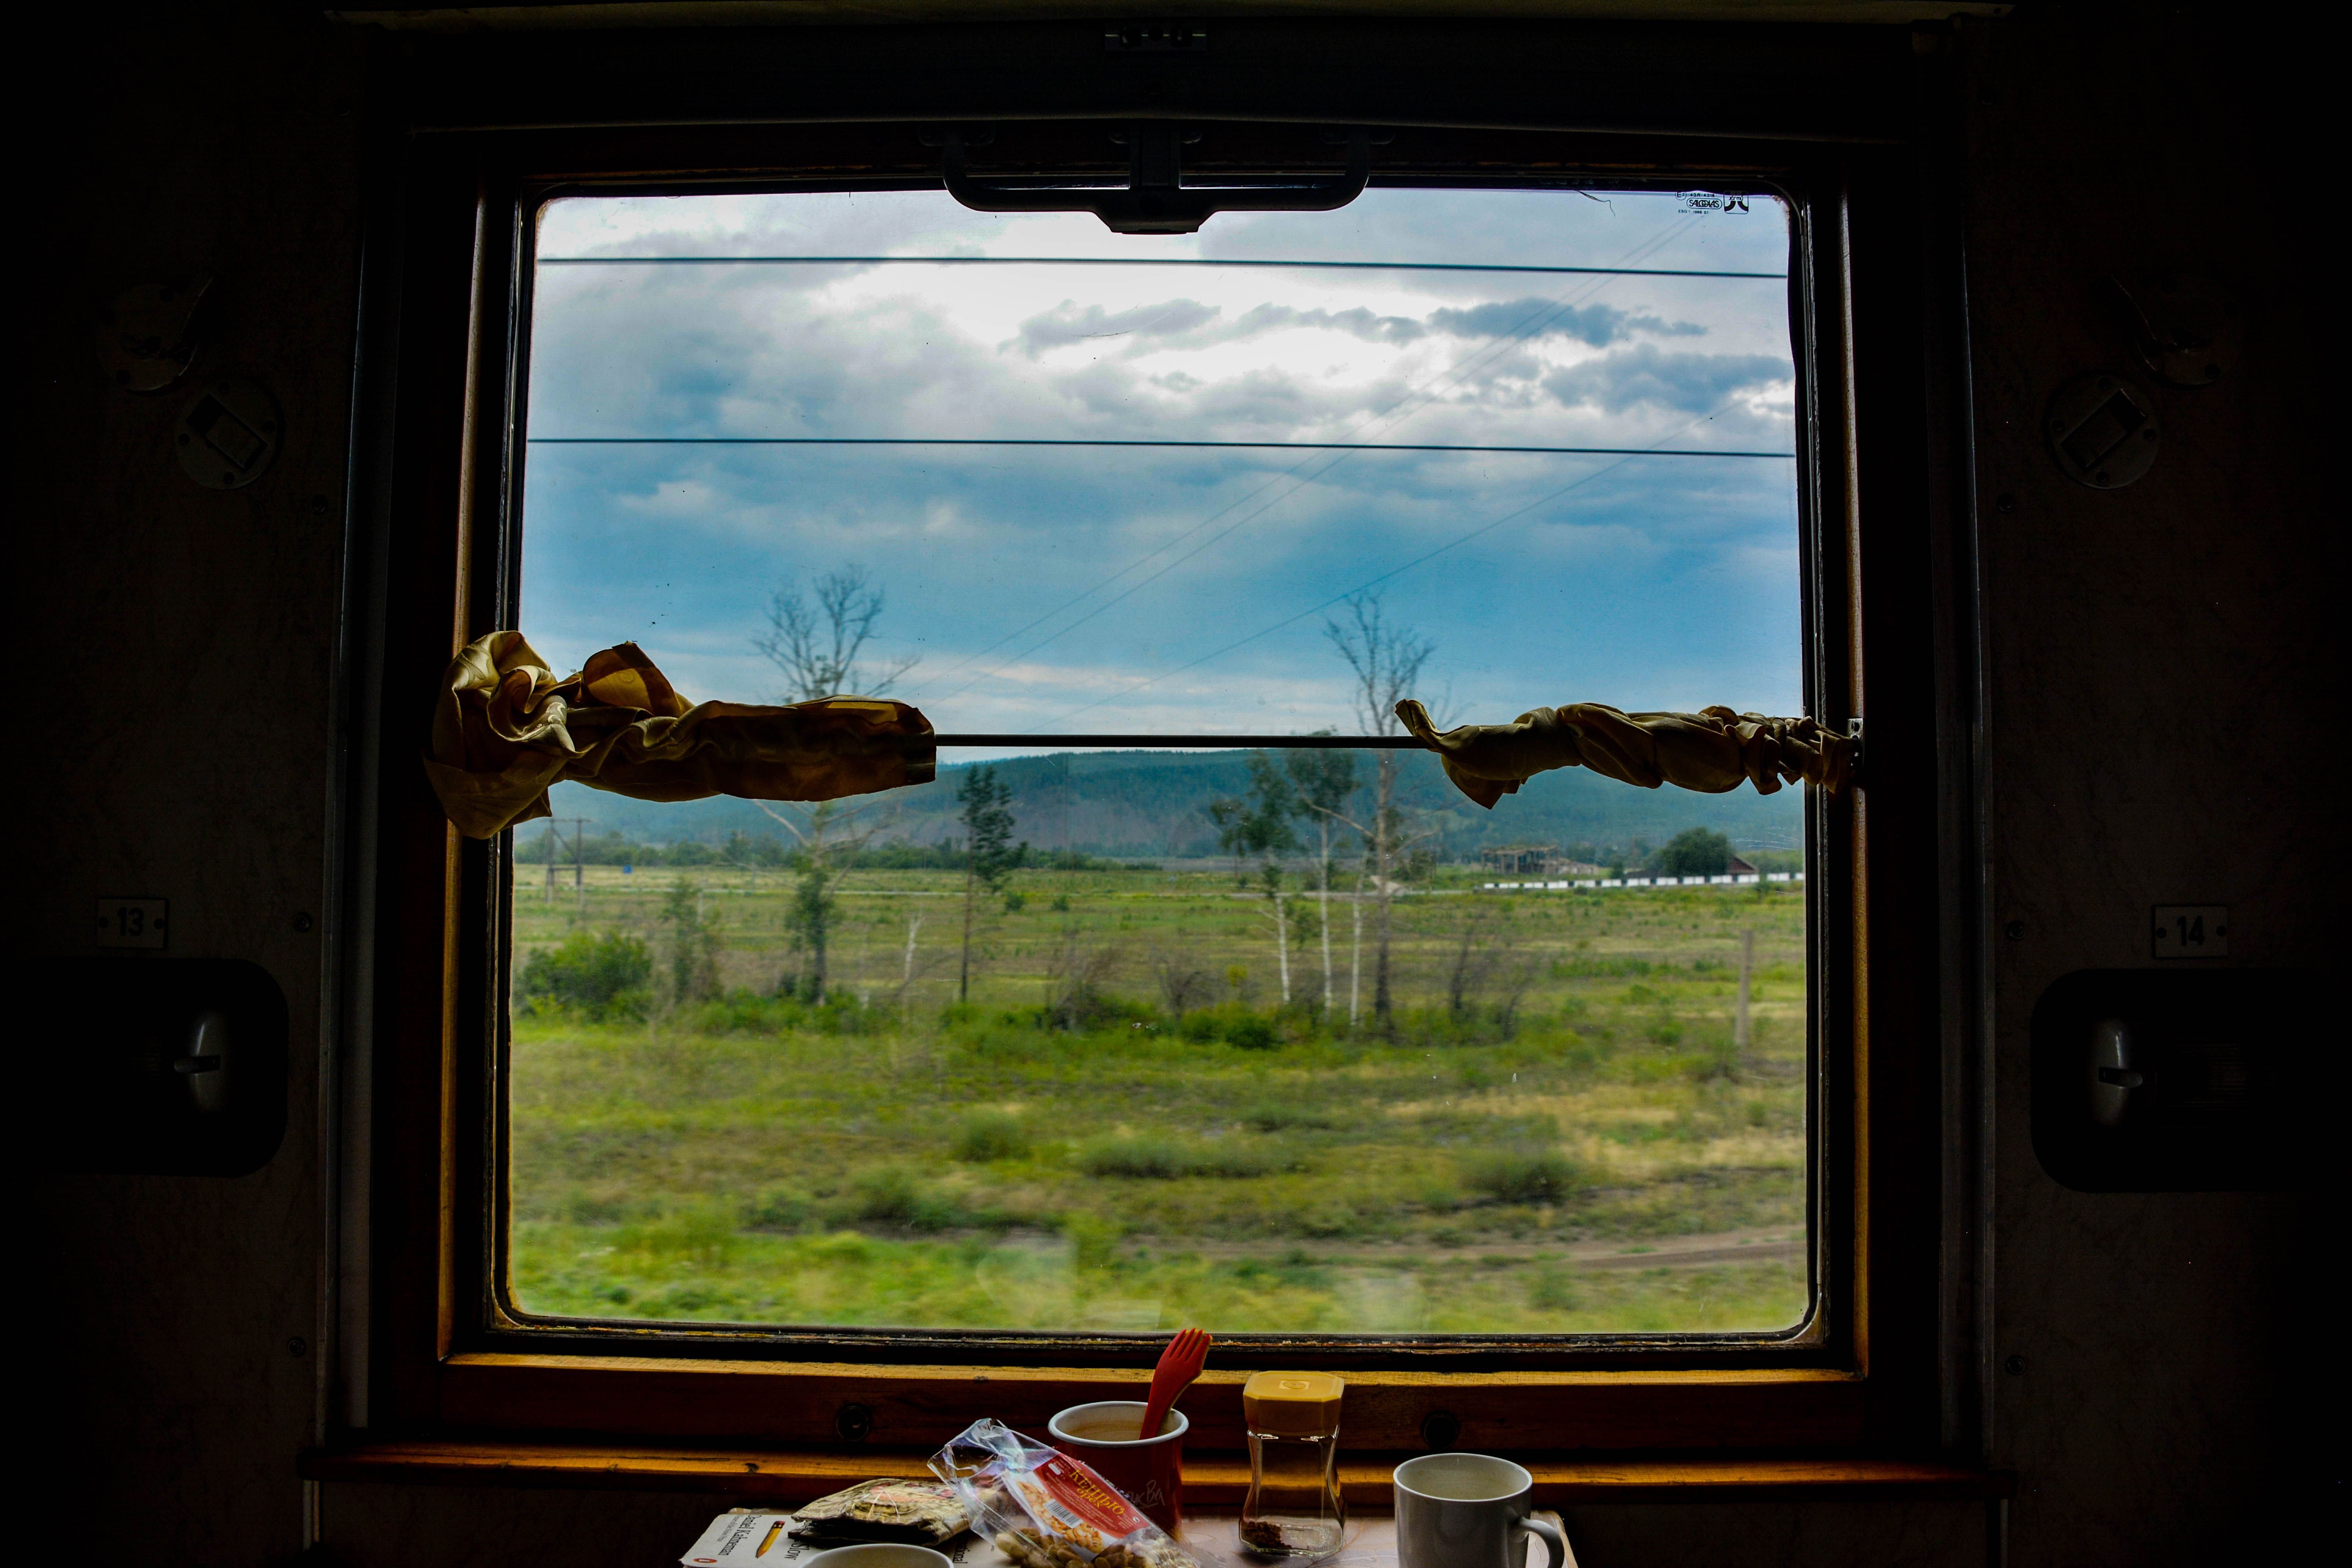 Your Guide to Trans-Mongolian Railway Trans-Siberian and Trans-Mongolian Railways are some of the most loved train rides in the world. Learn how to buy tickets, choose routes and what to expect!